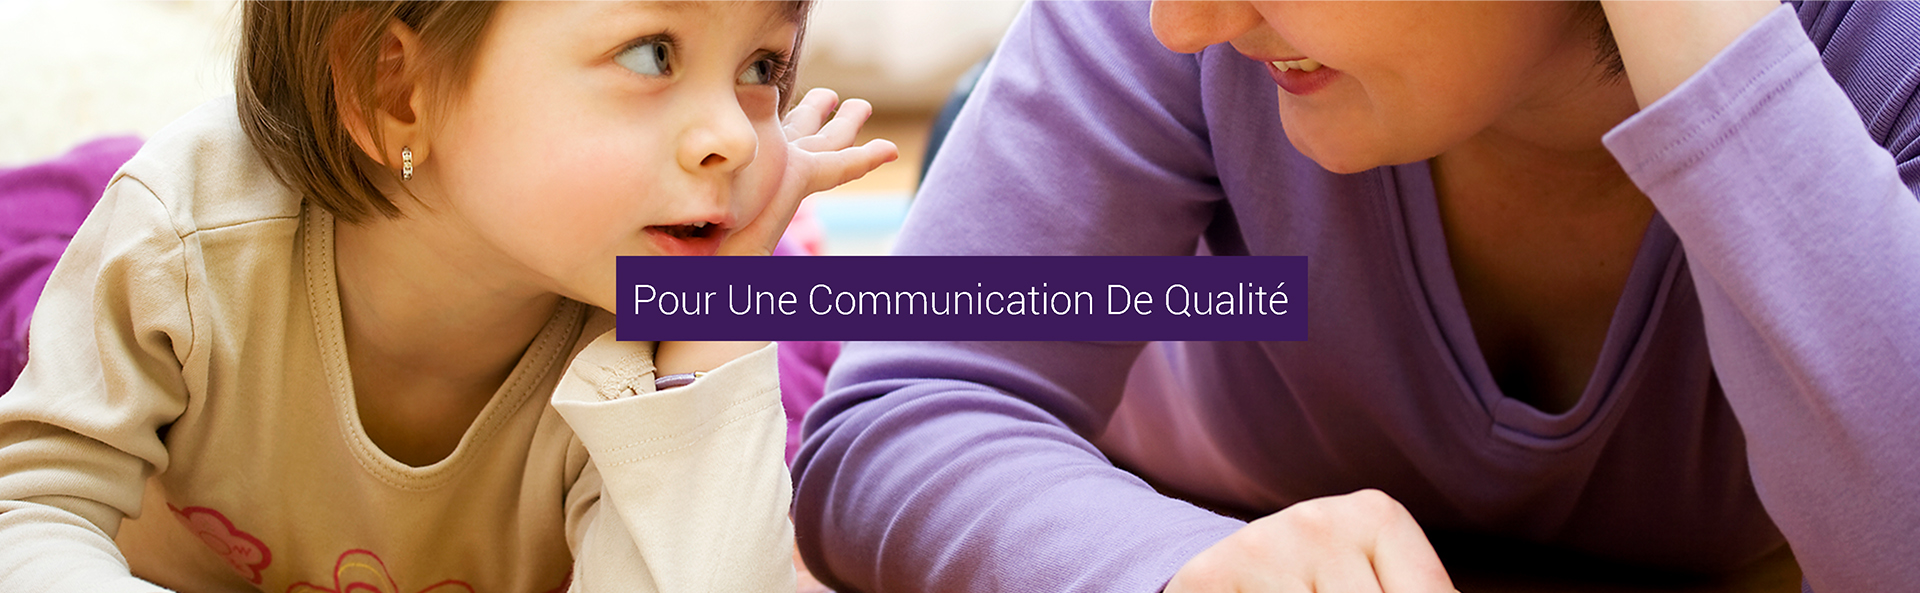 Communication De Qualite